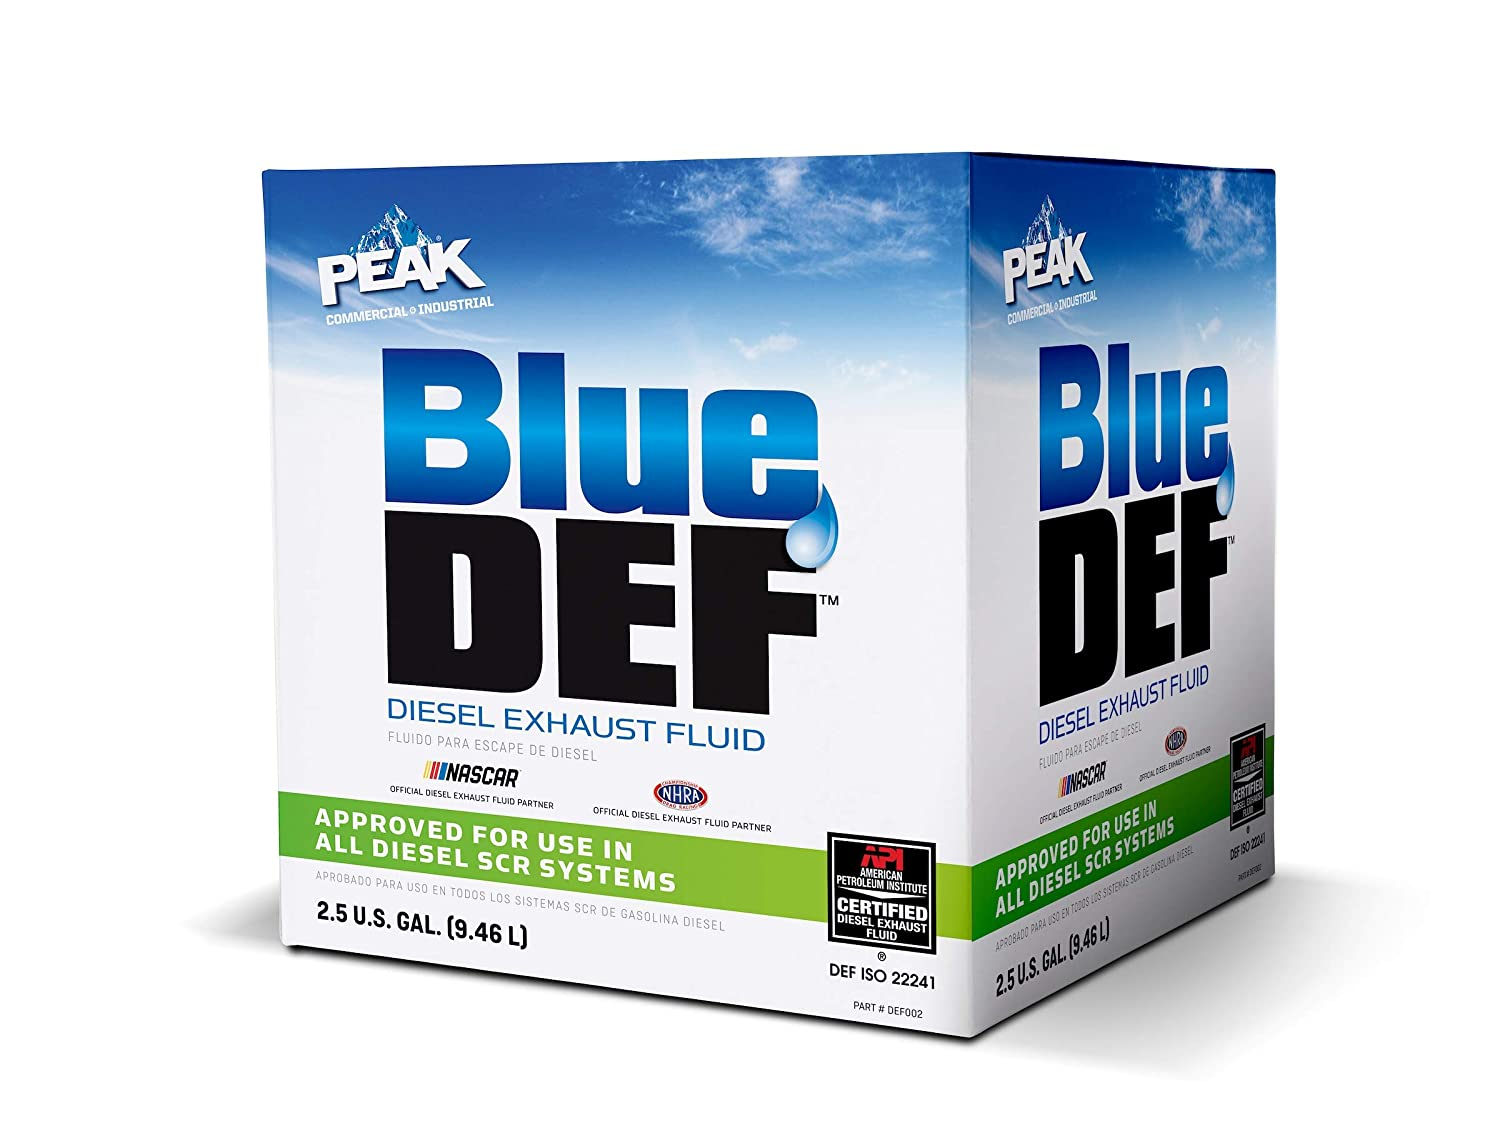 Diesel Exhaust Fluid >> Peak Bluedef Diesel Exhaust Fluid 2 5 Us Gallon